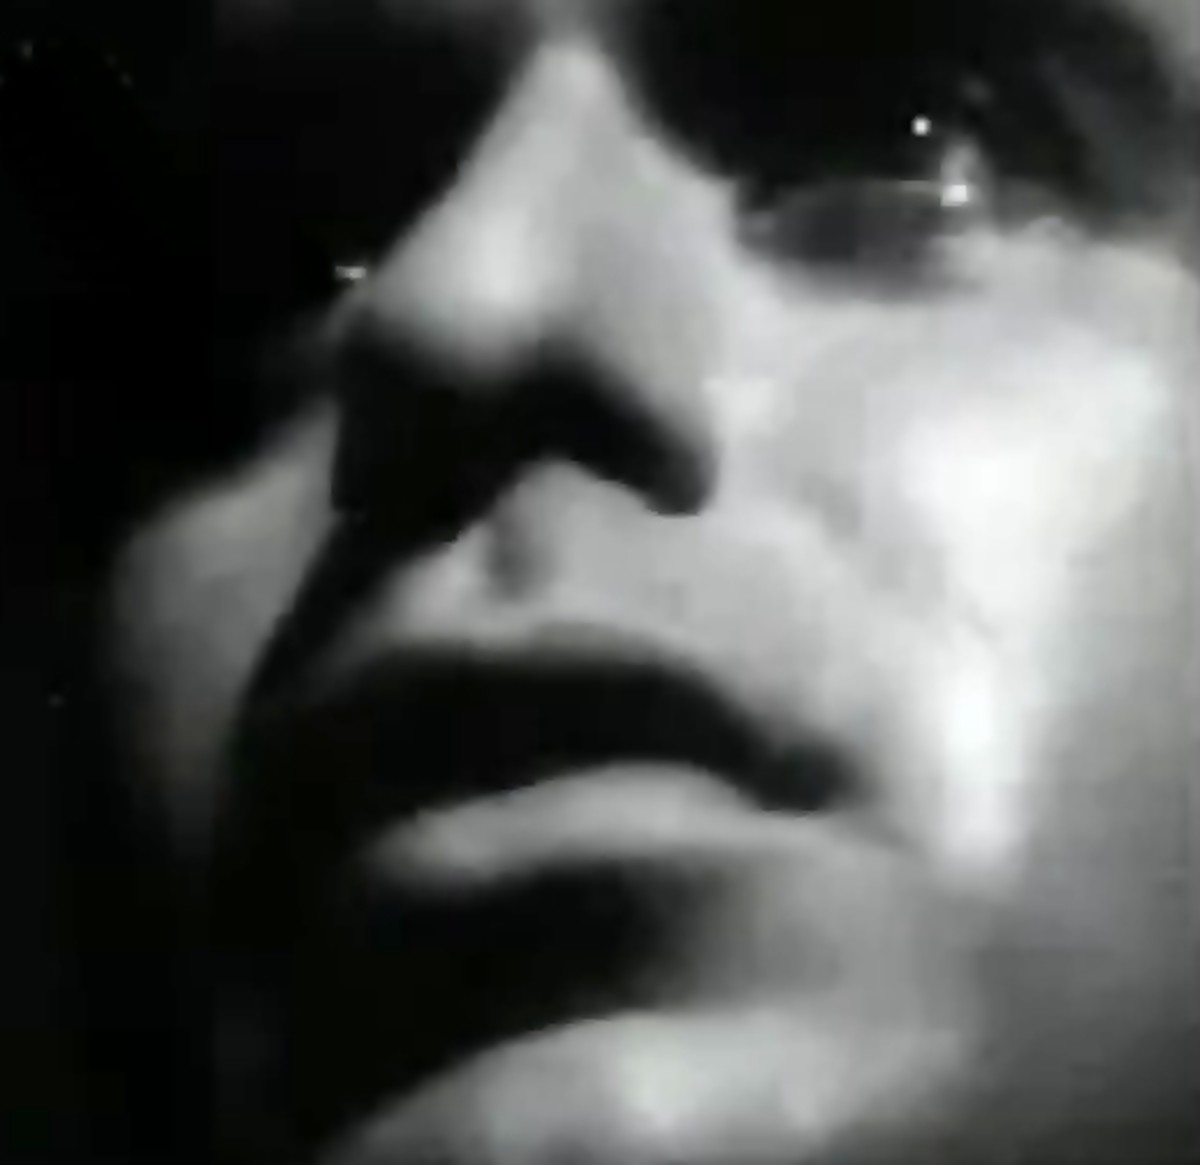 Another great rendition by Mohammed Rafi, classical music that touches your heart